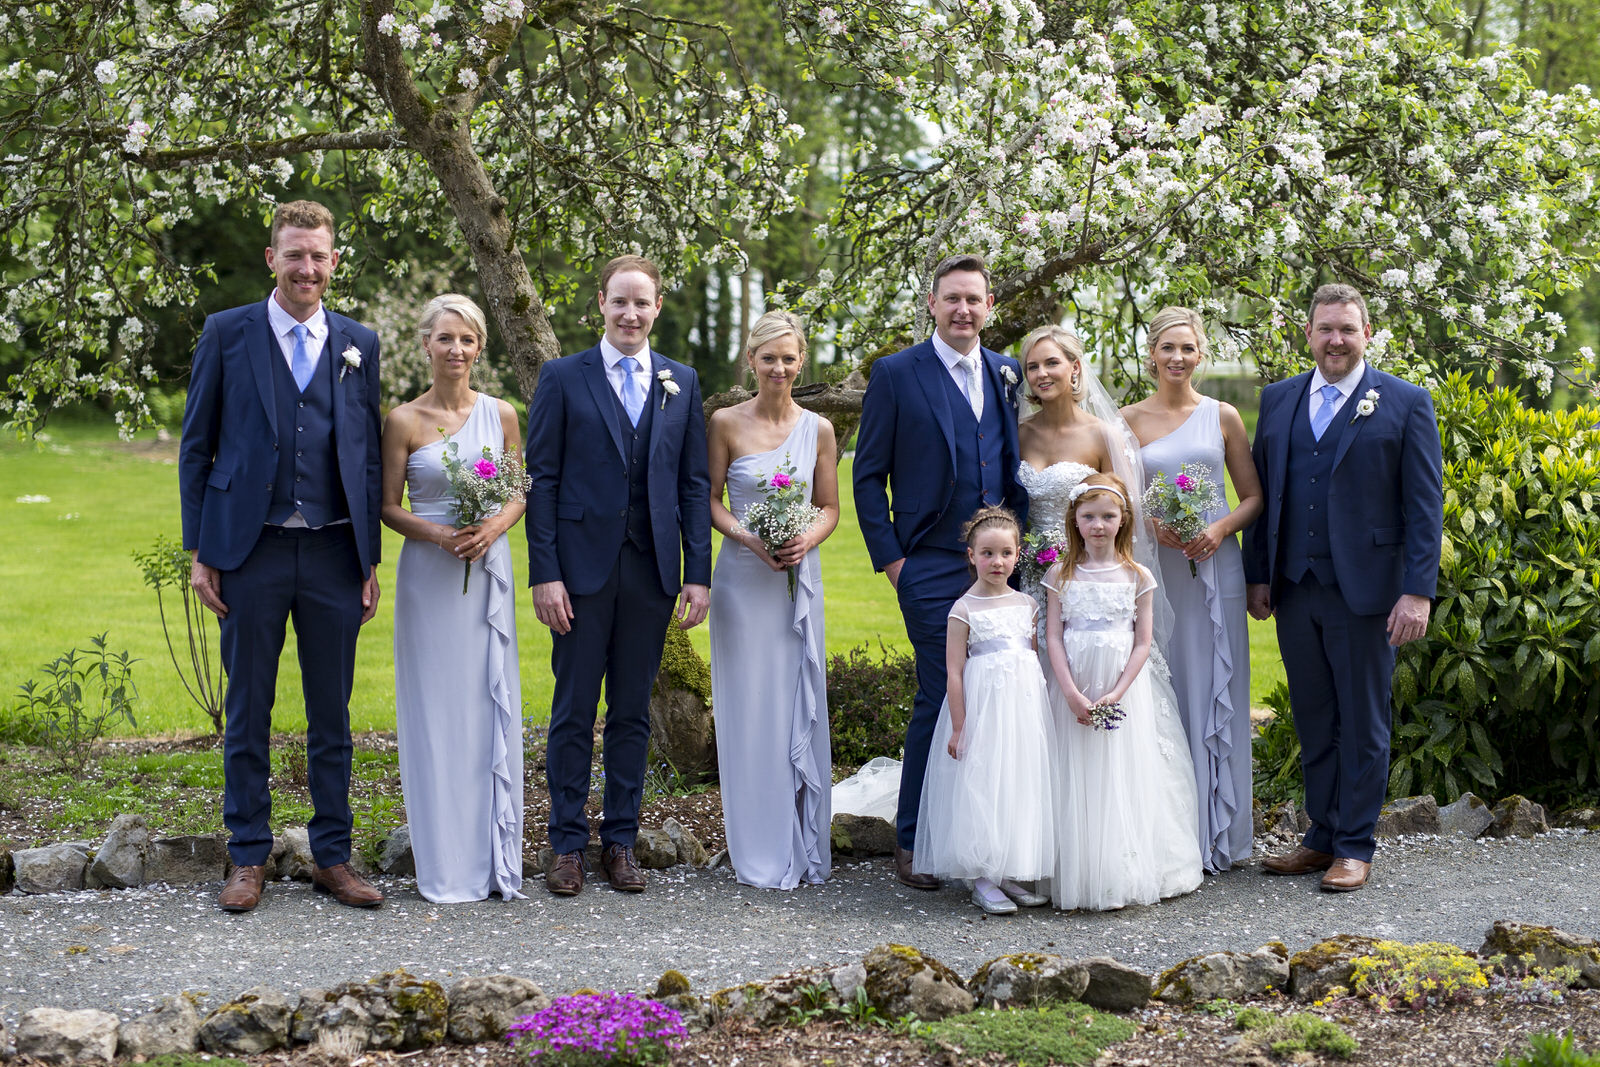 Ashley_park_wedding_photographer_ireland_a184.jpg